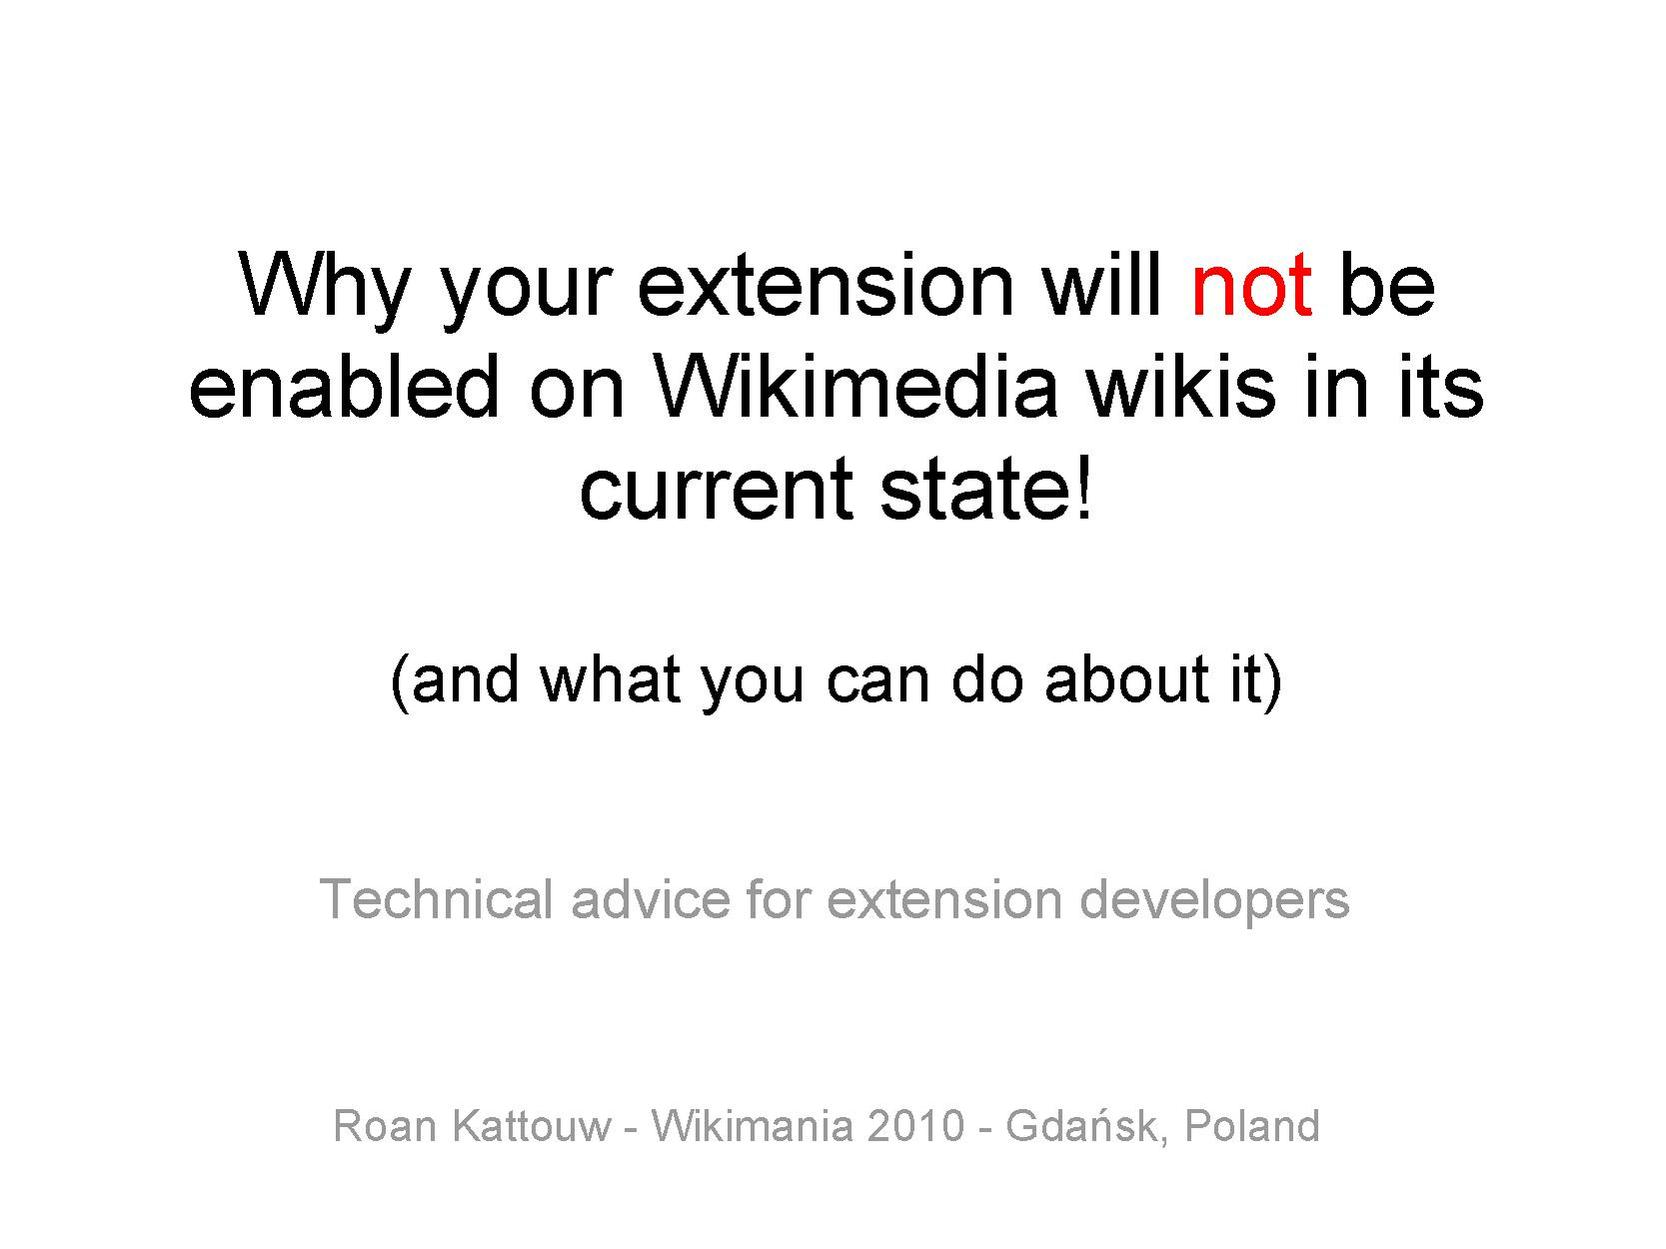 Why your extension will not be enabled on Wikimedia wikis in its current state and what you can do about it.pdf